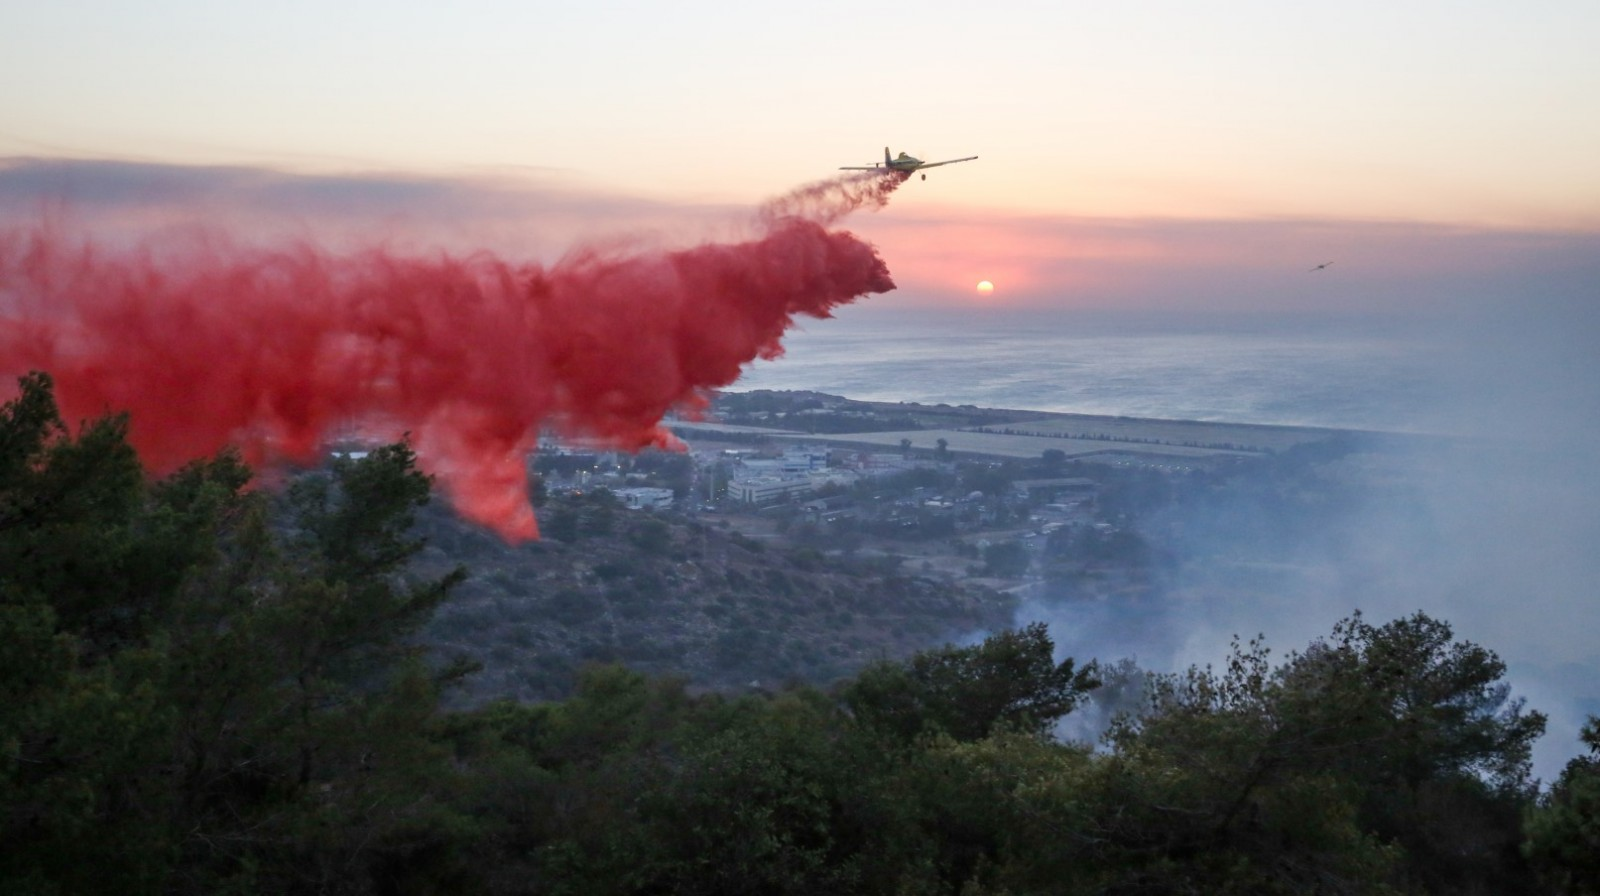 Israeli firefighter airplanes try to extinguish a fire raging in Haifa on November 24, 2016. Photo by Yaakov Cohen/FLASH90